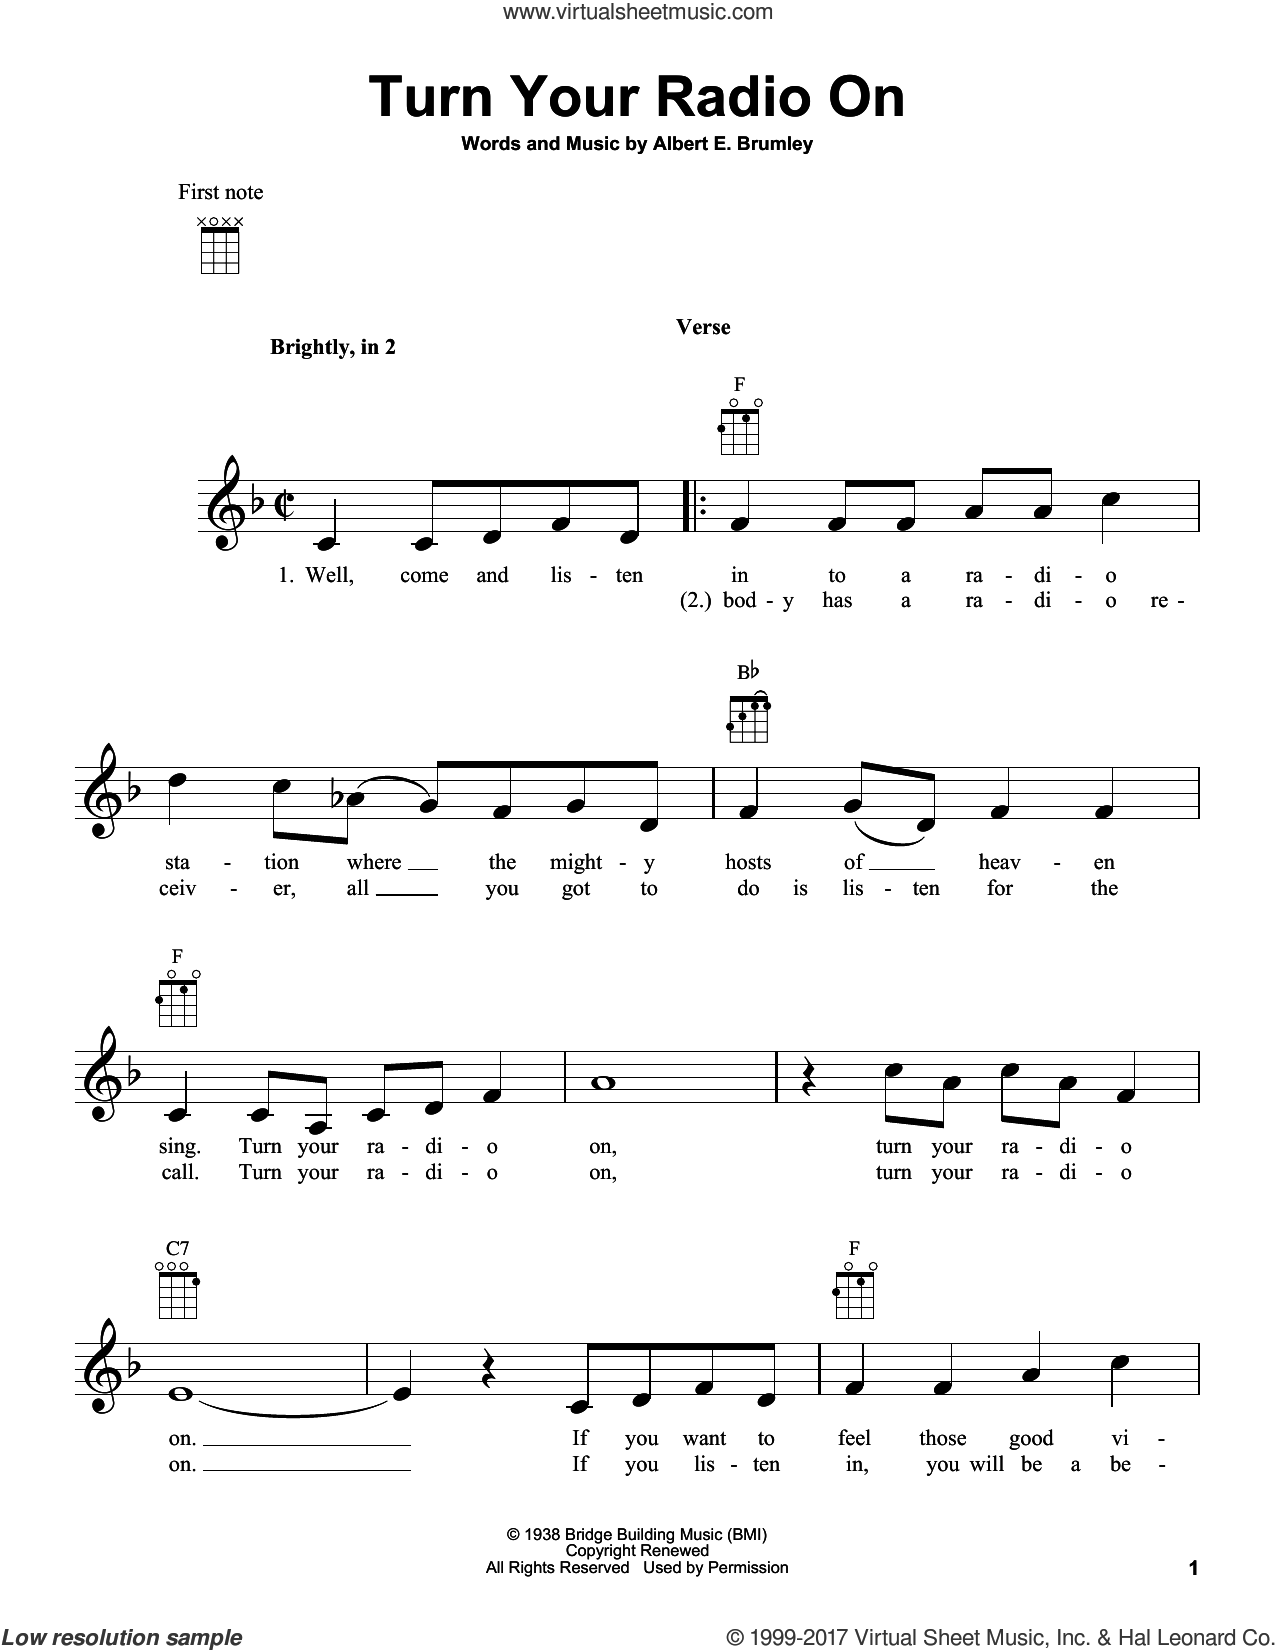 Turn Your Radio On sheet music for ukulele by Albert E. Brumley, intermediate skill level